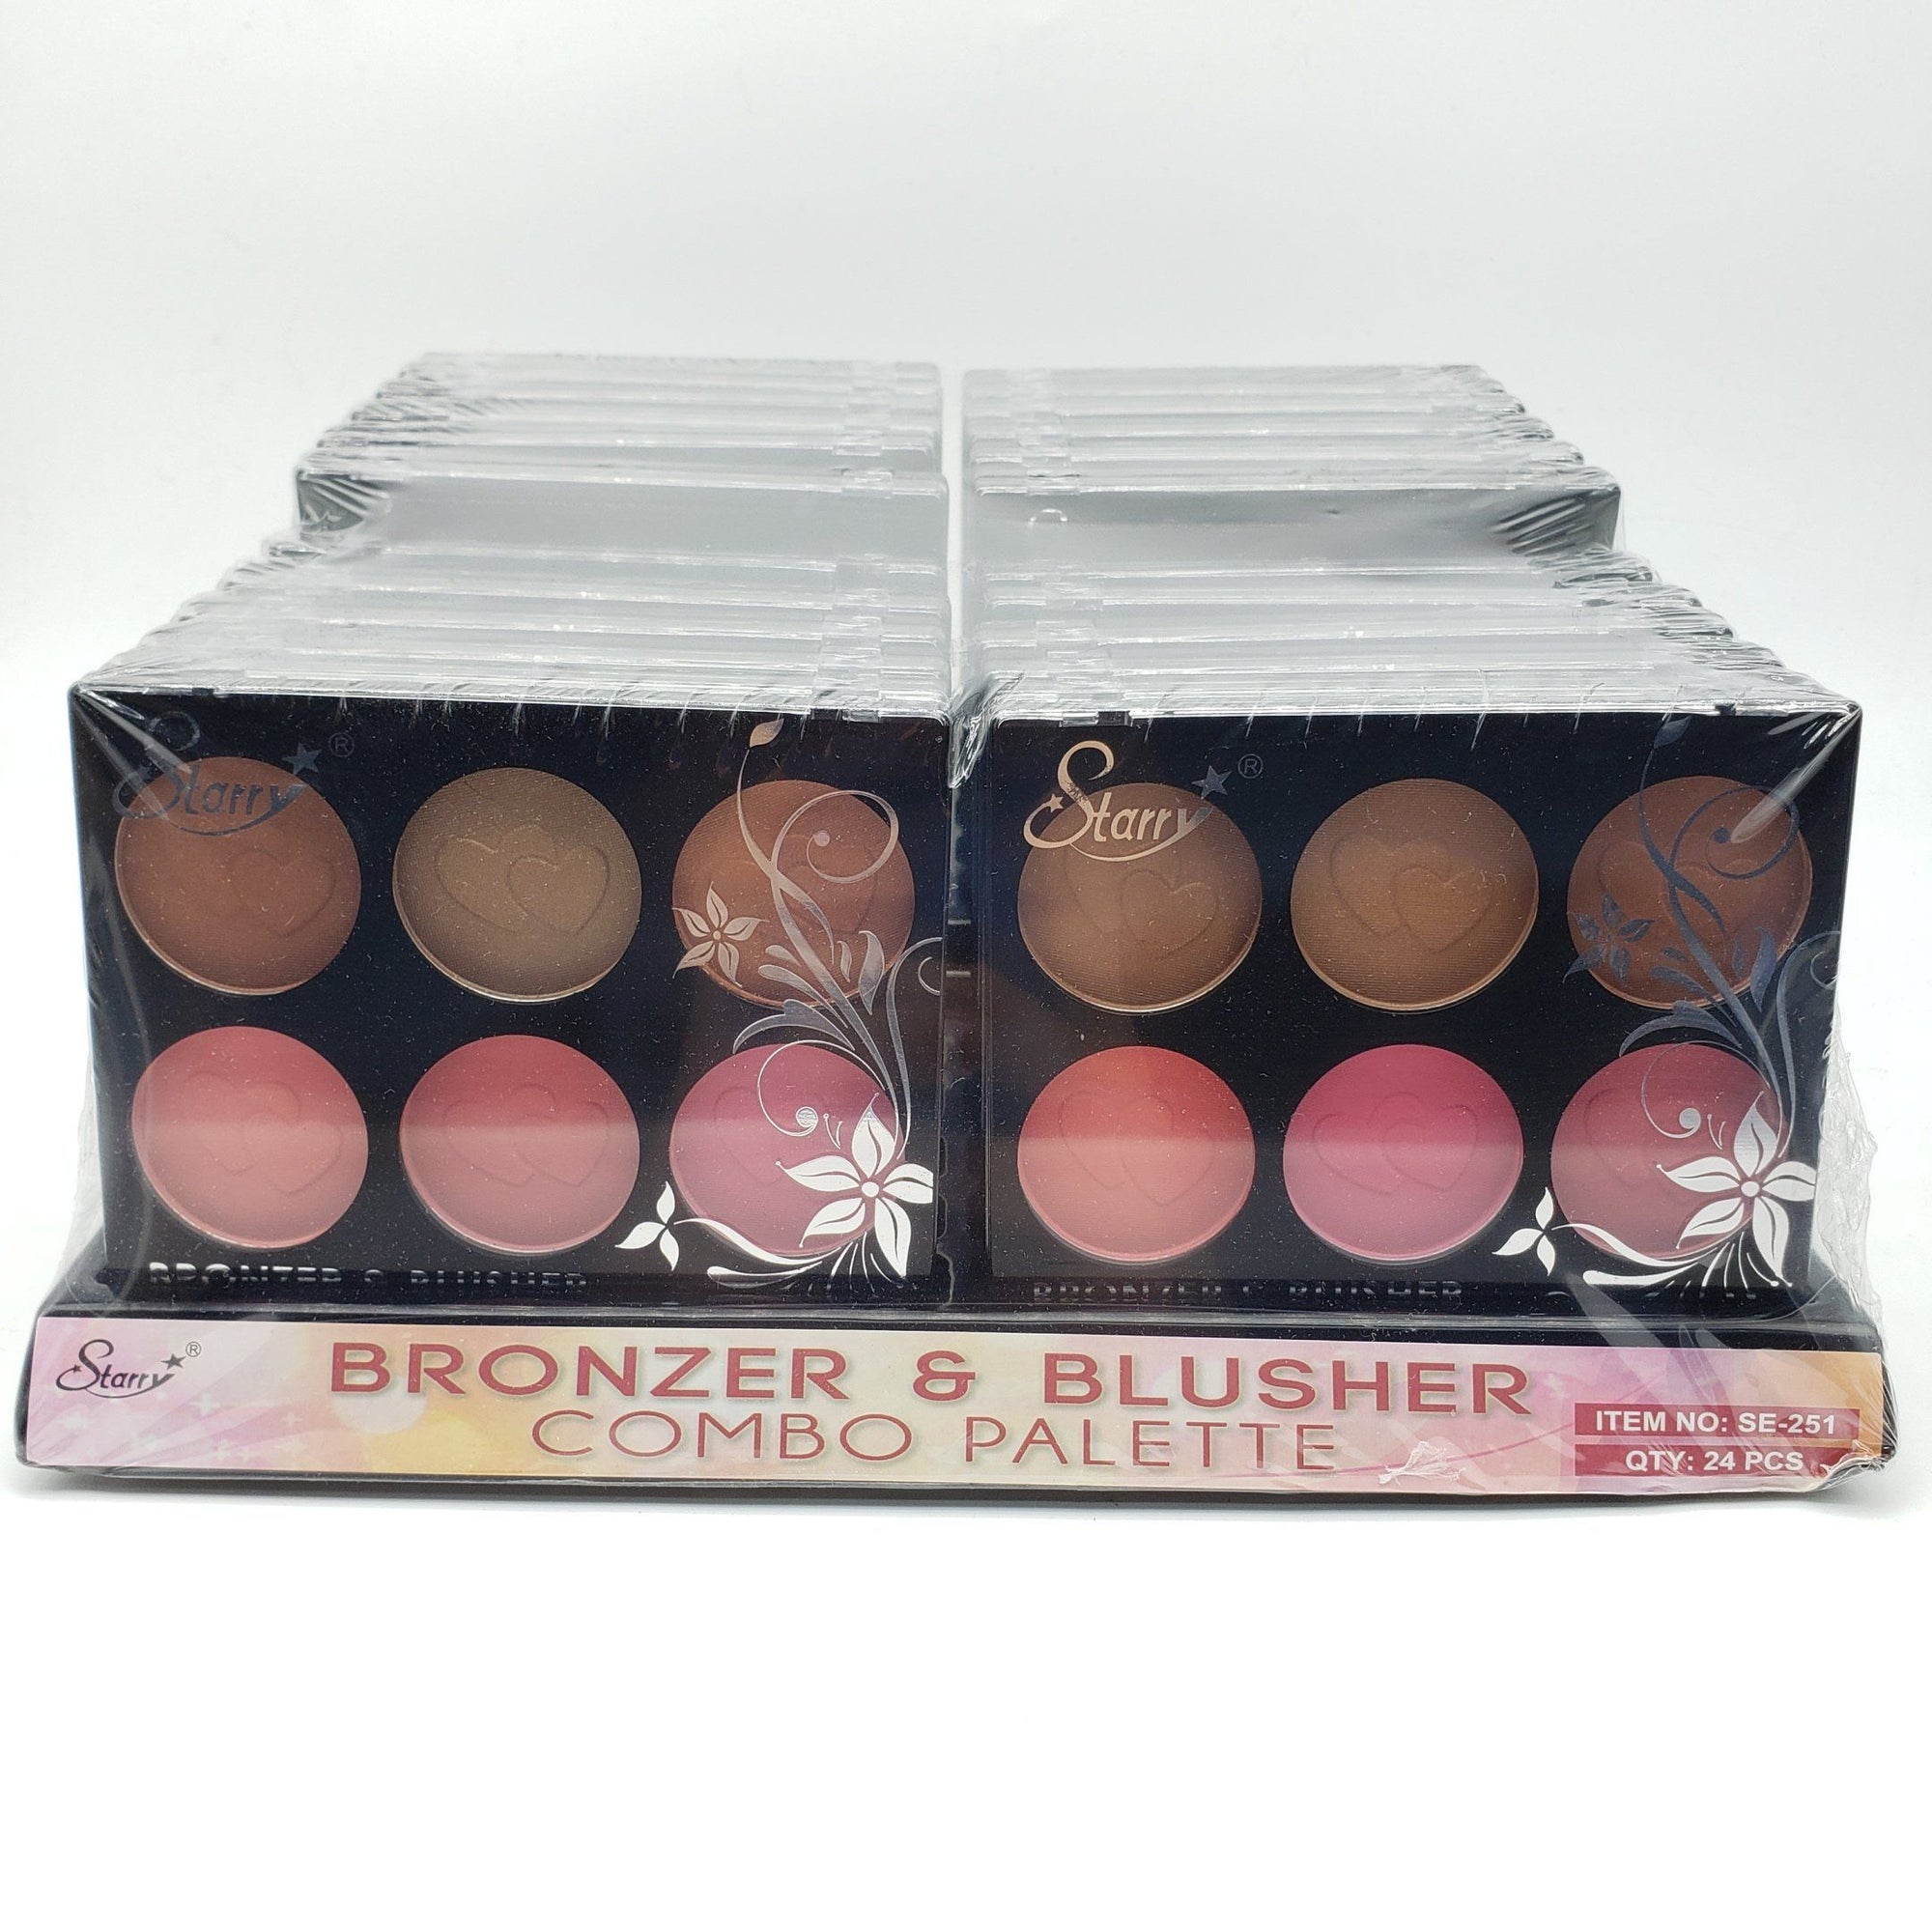 Starry Bronzer and Blush Combo Palette Set #SE251 (24PC)